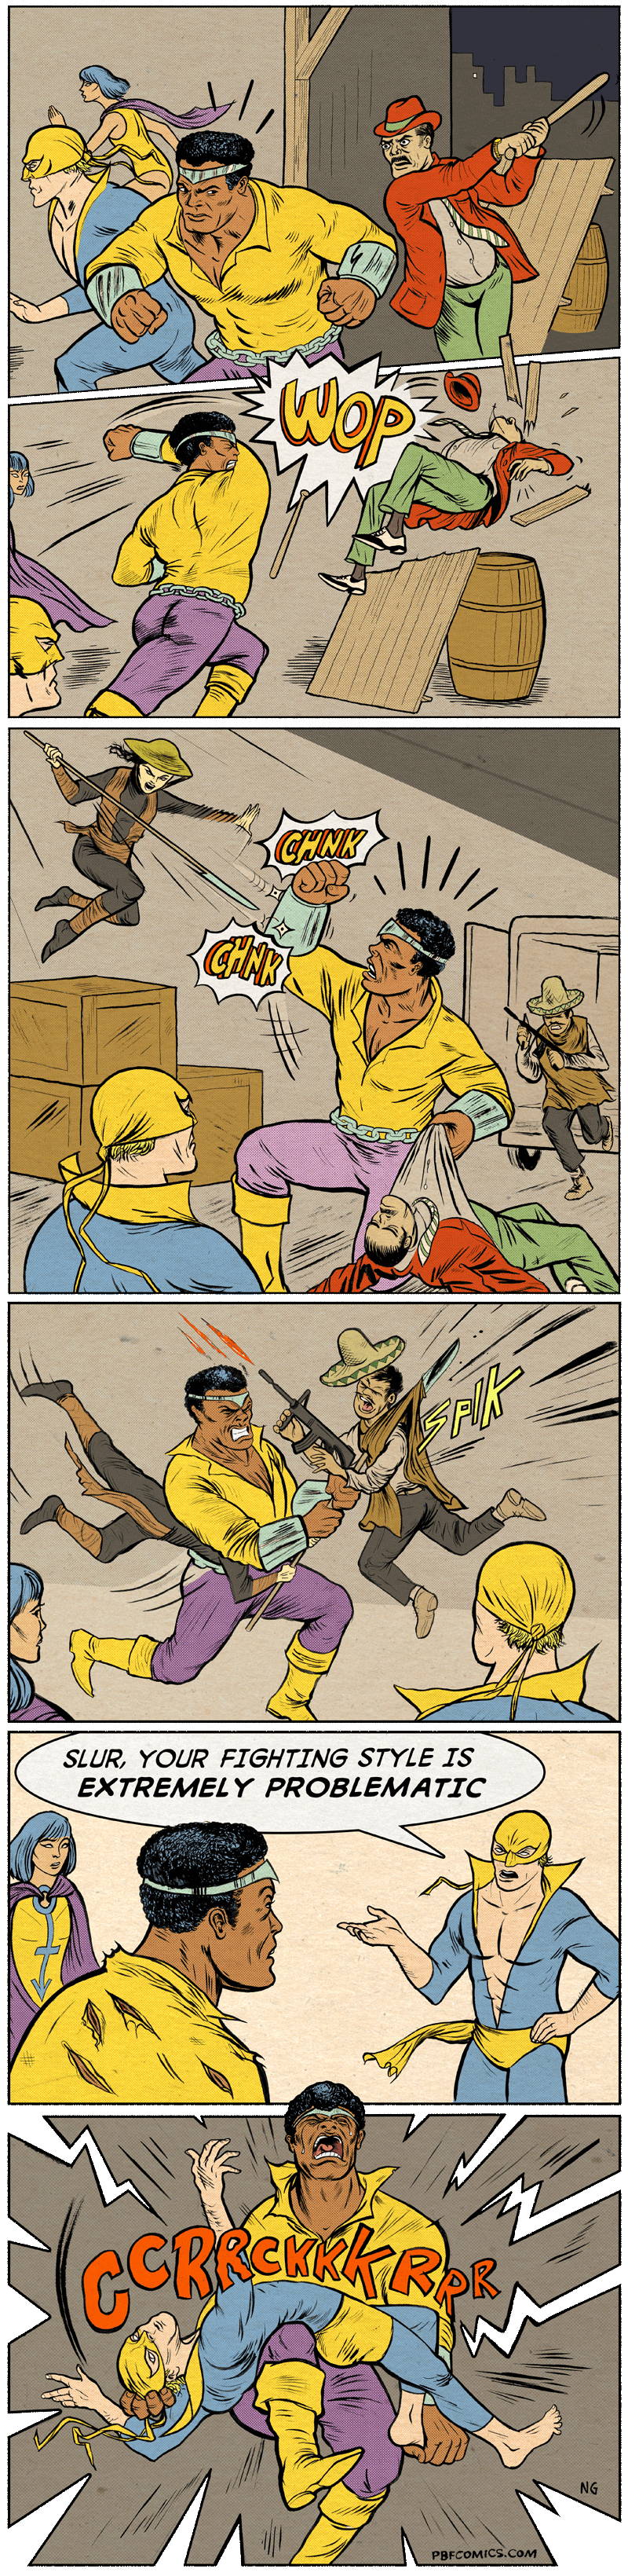 http://pbfcomics.com/wp-content/uploads/2016/09/PBF275-The_Offenders.png